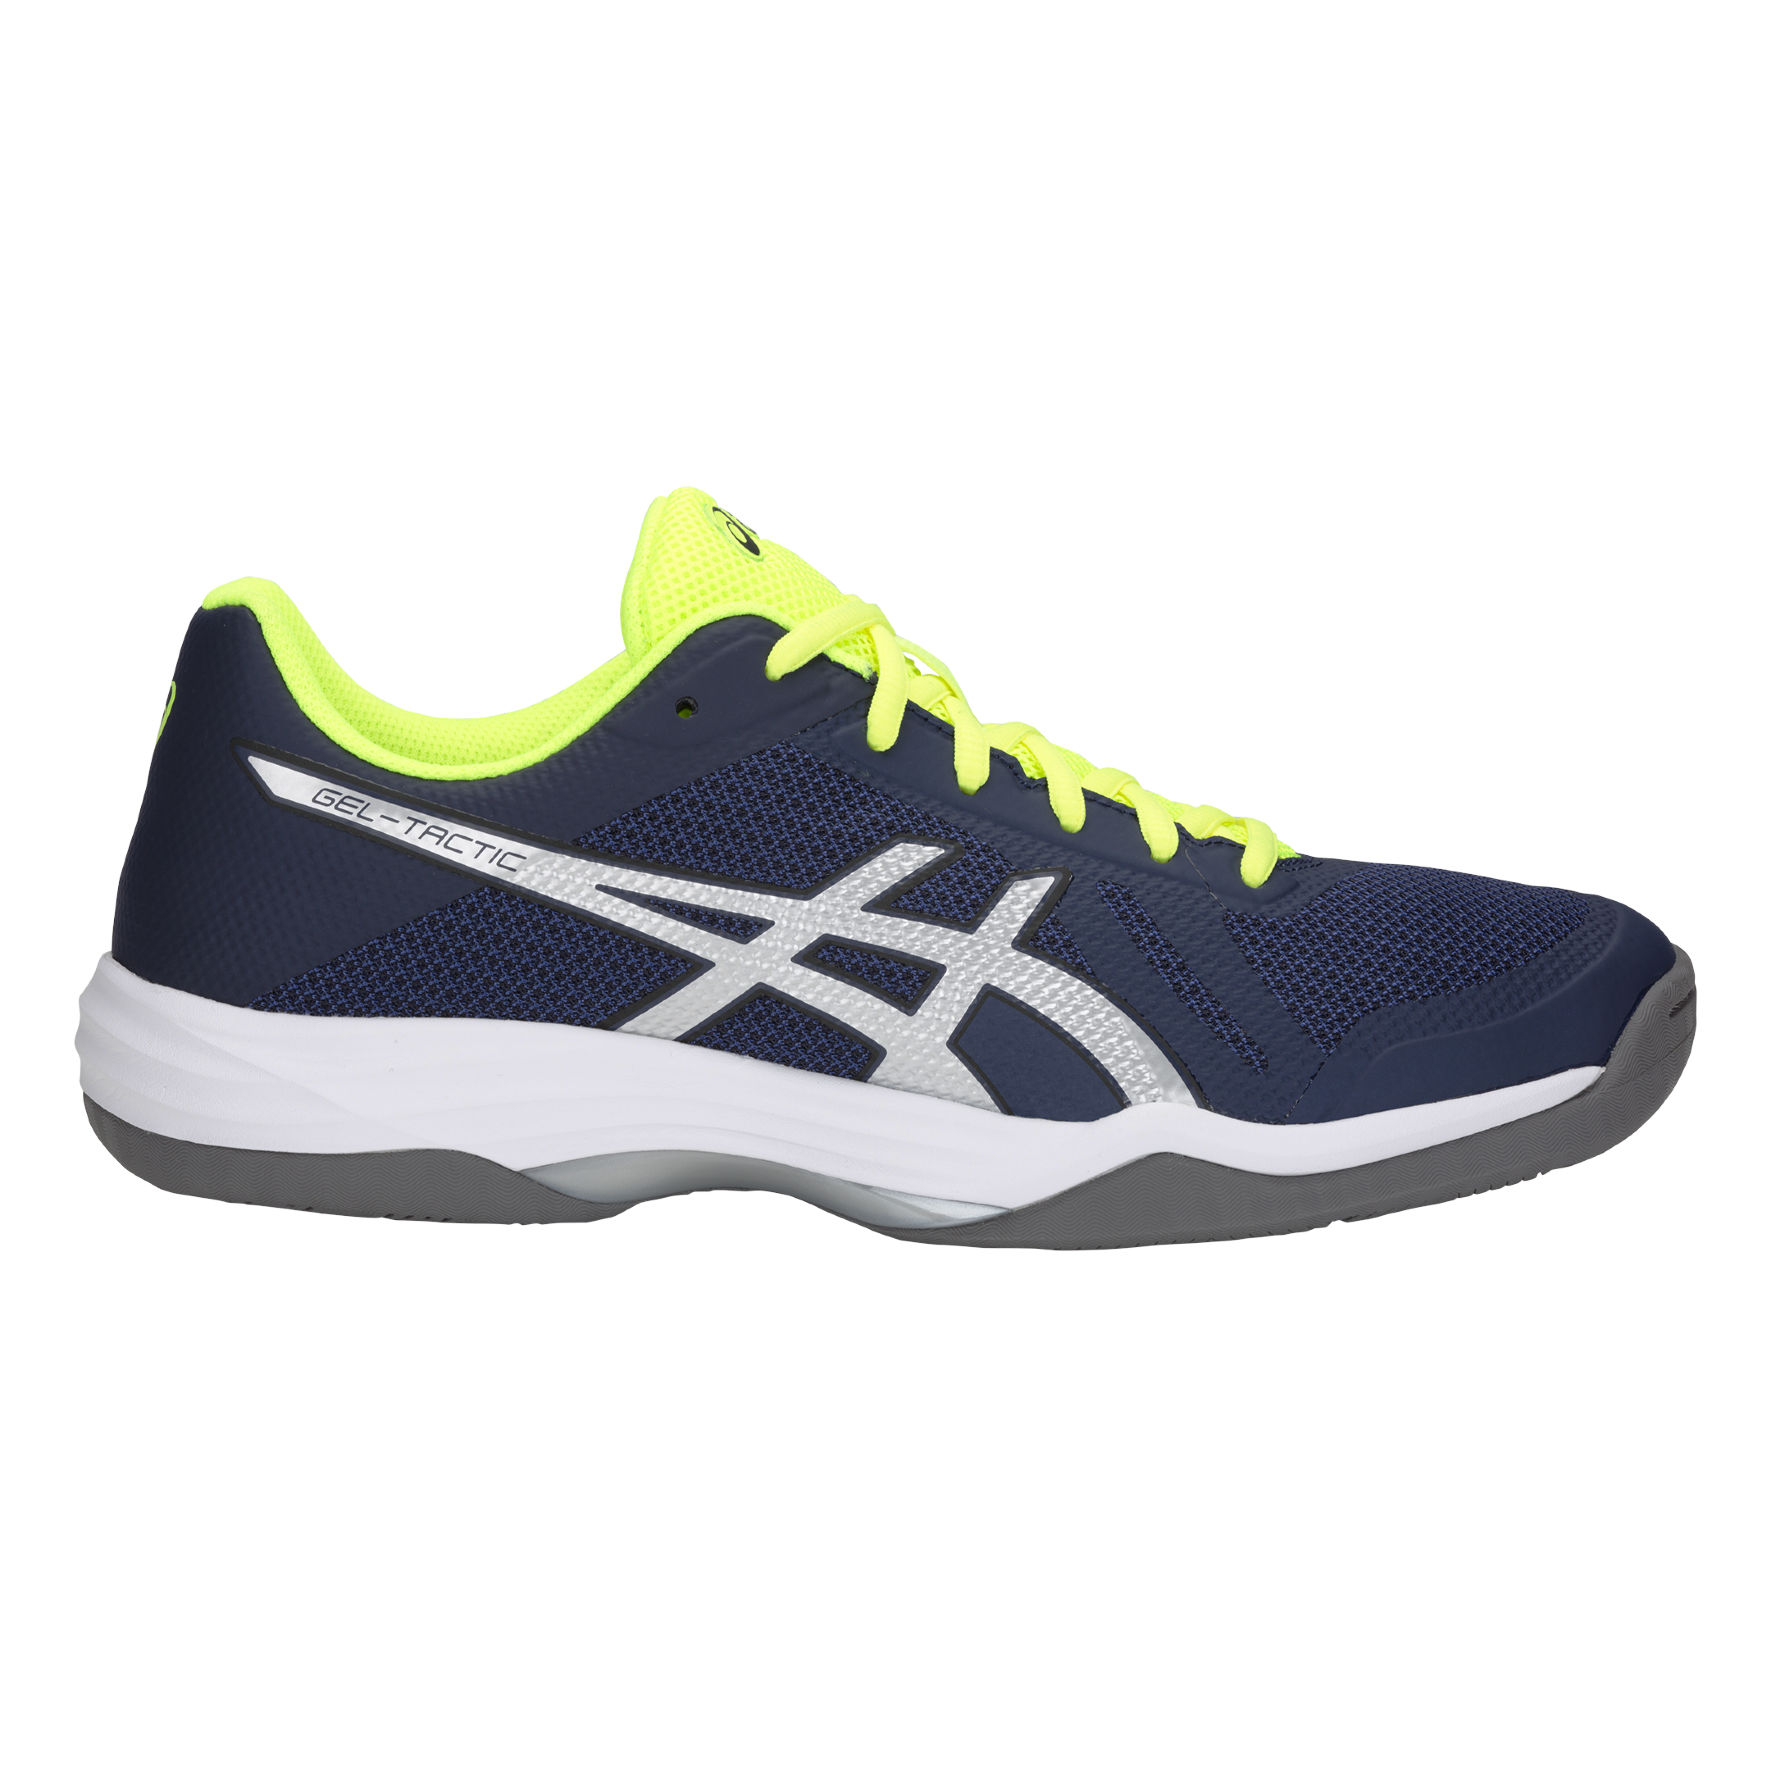 Asics Gel Tactic in Blau Gelb